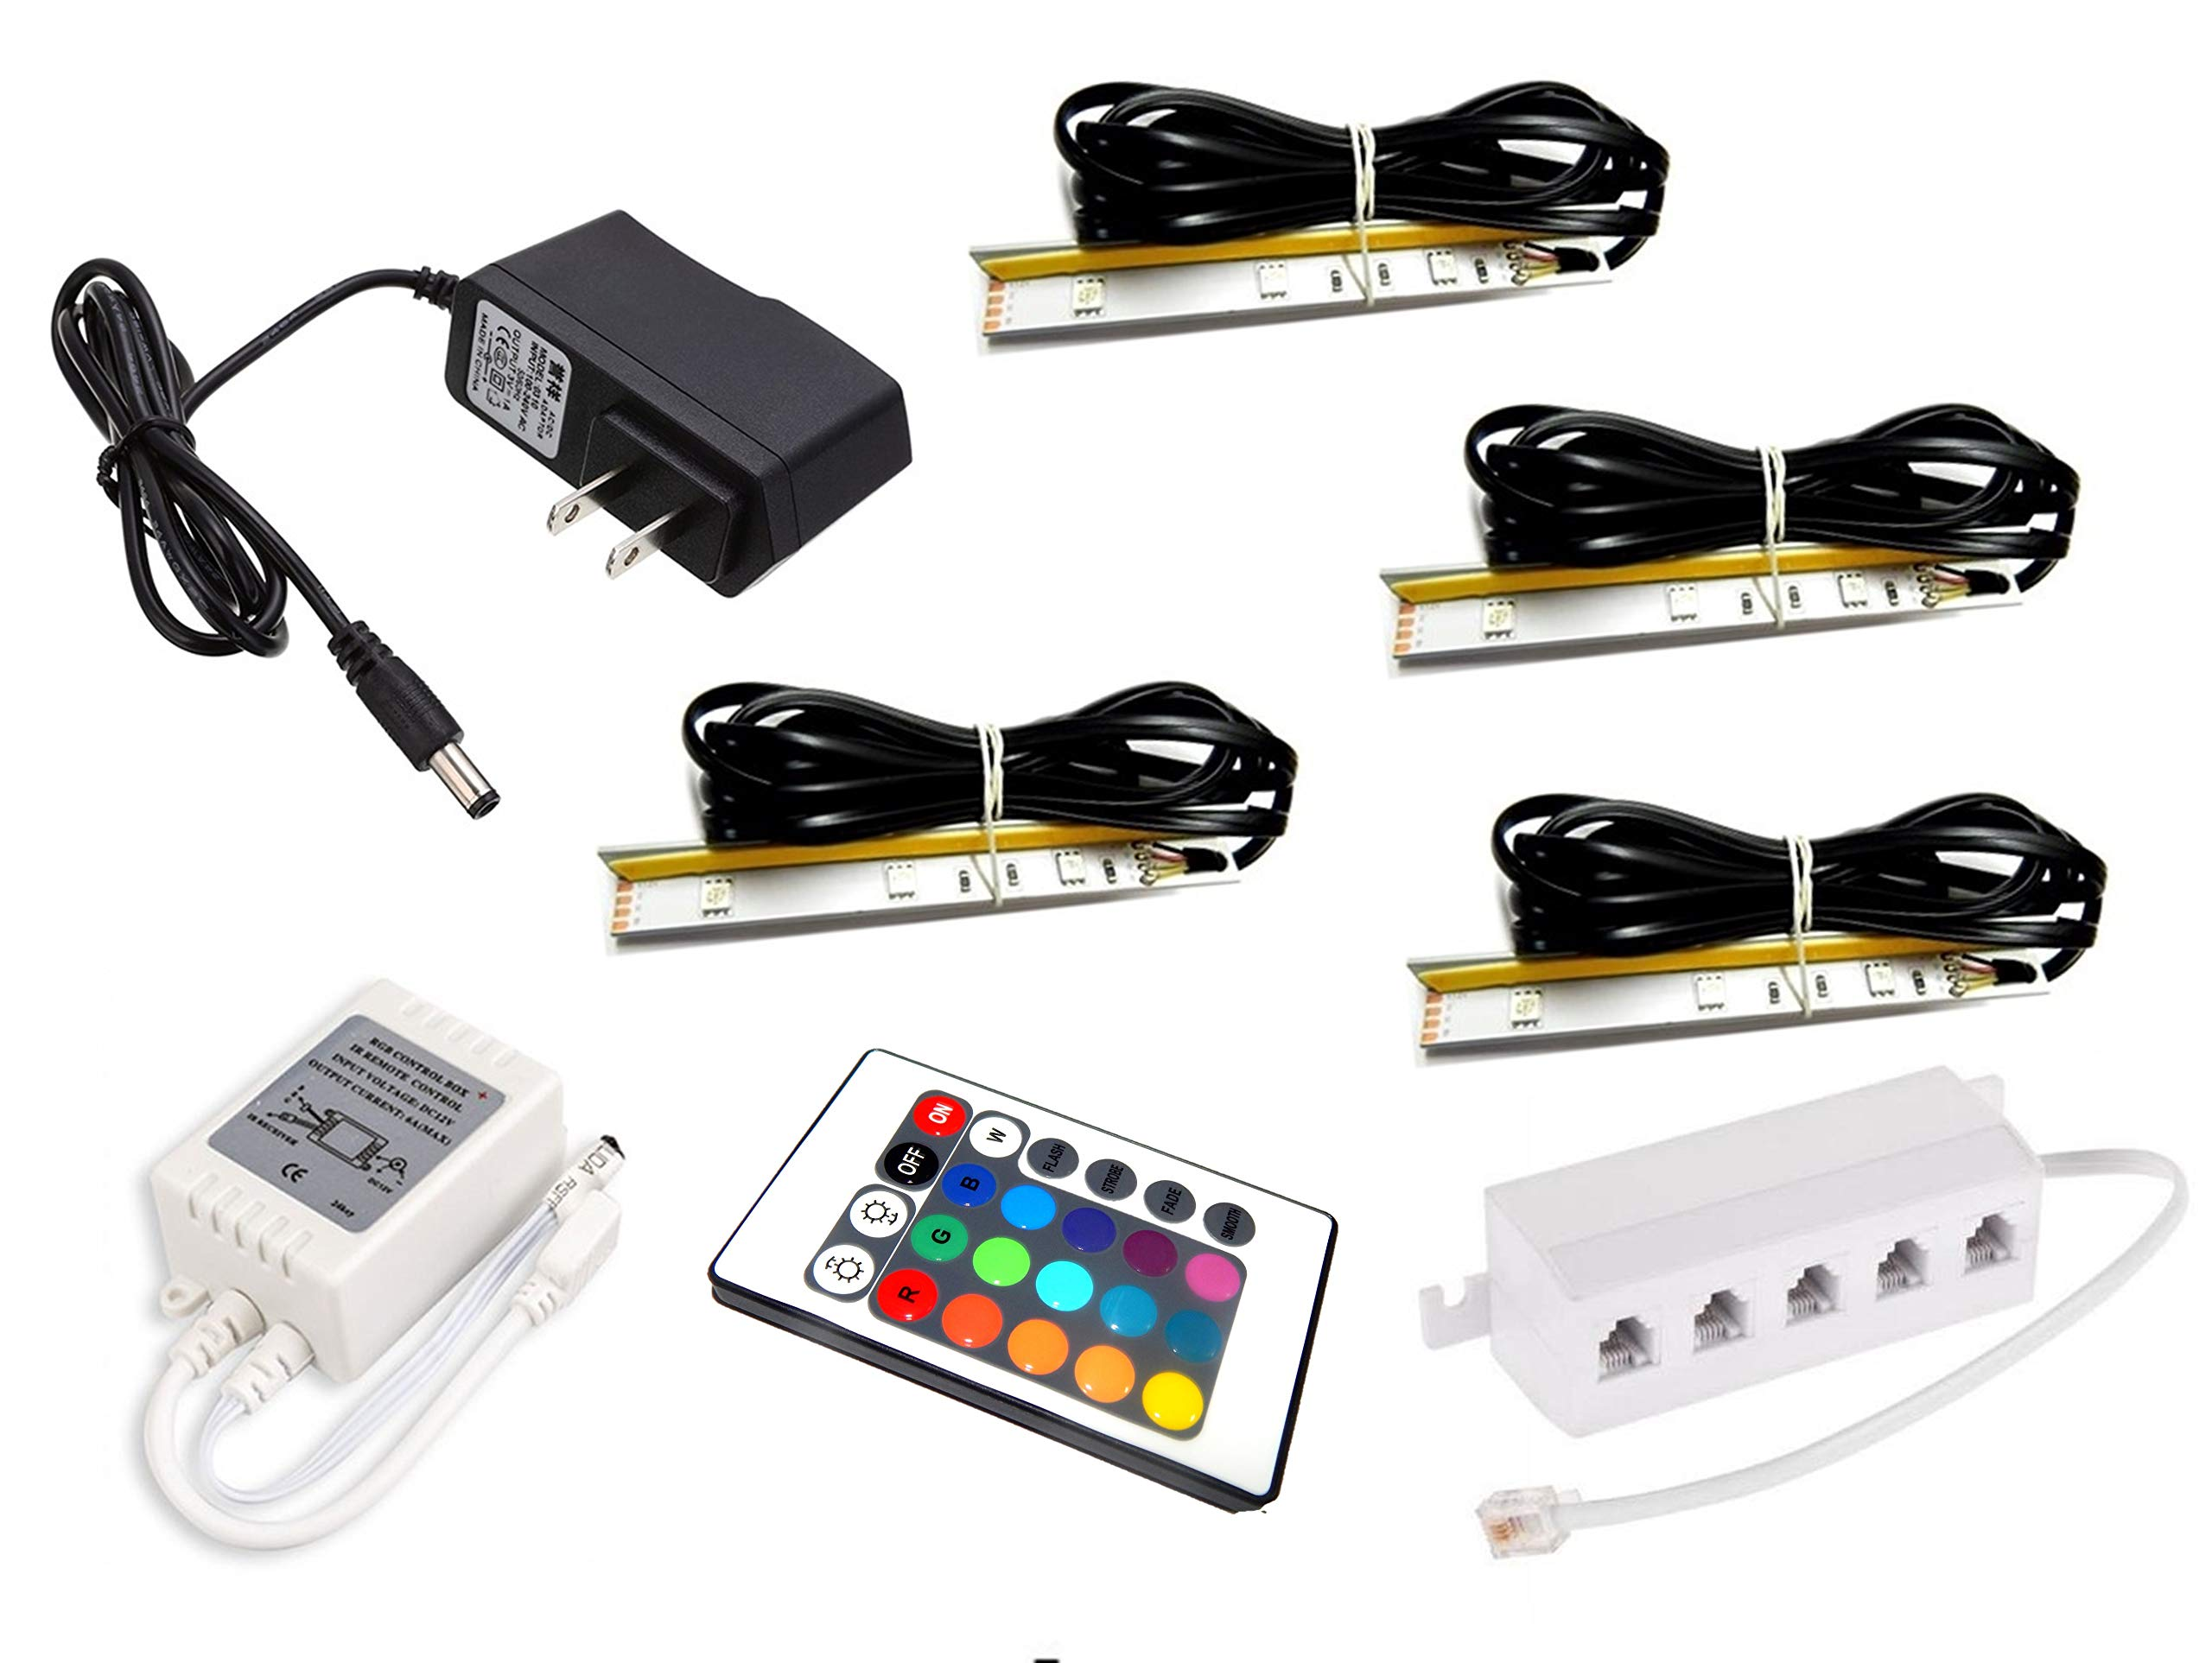 Set of 4 Clips LED Glass Edge Lighting kit in RGB Including Multi-Function Remote Control